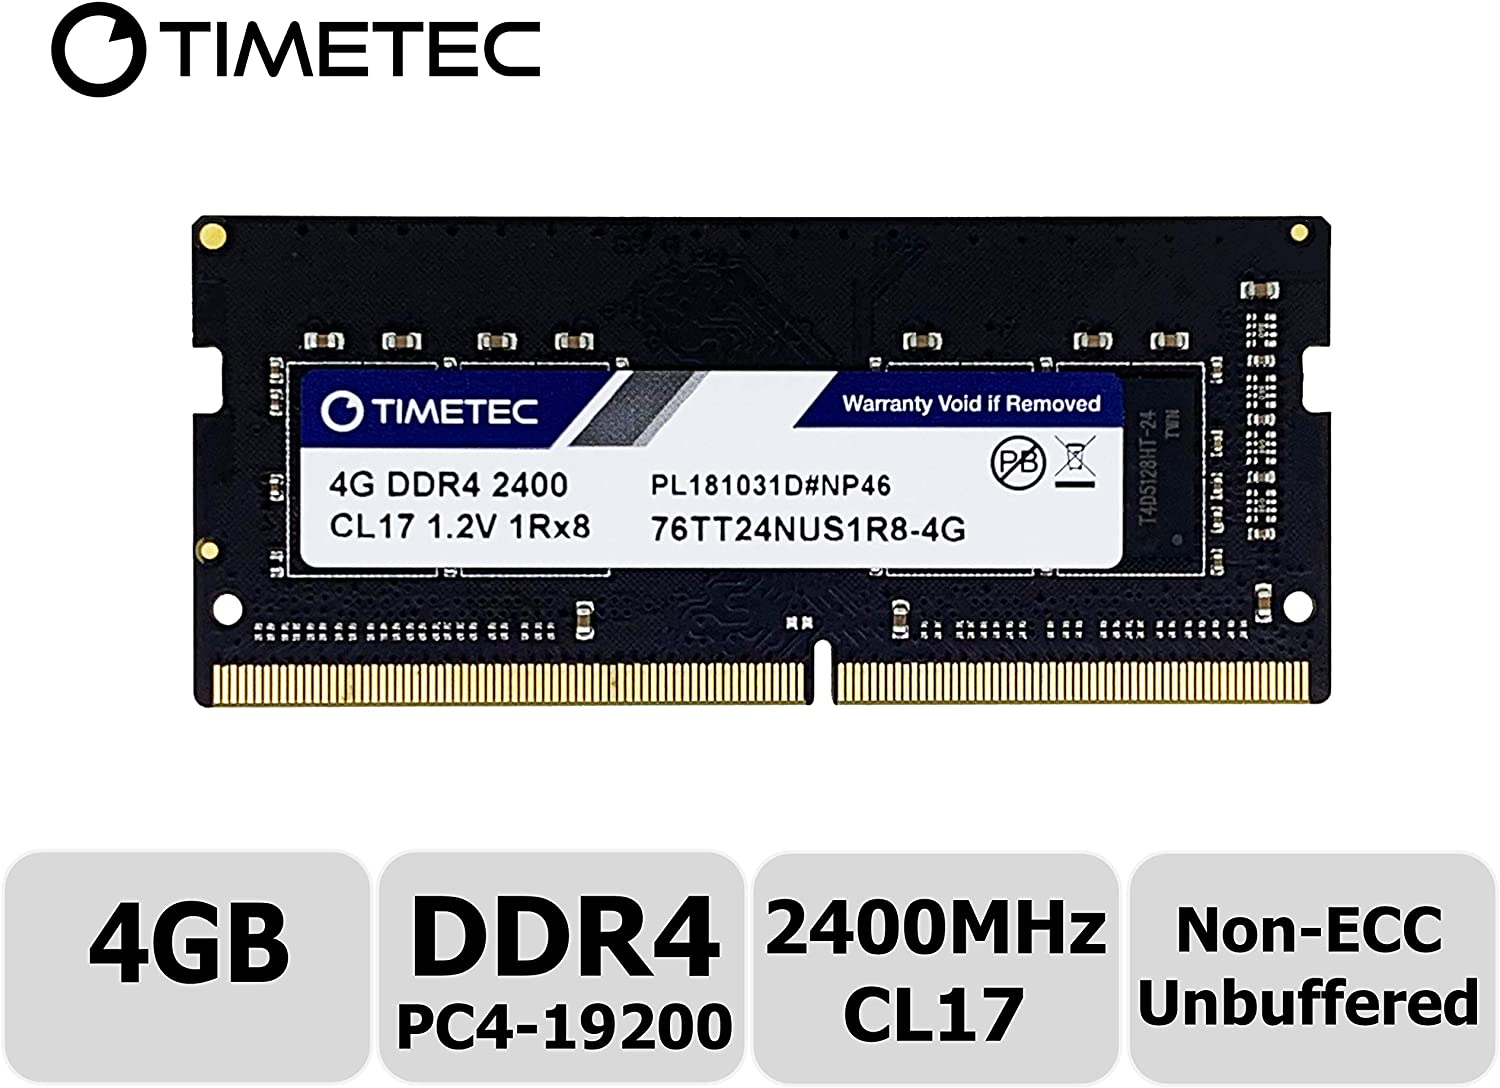 Timetec Hynix IC 4GB DDR4 2400MHz PC4-19200 Unbuffered Non-ECC 1.2V CL17 1Rx8 Single Rank 260 Pin SODIMM Laptop Notebook Computer Memory RAM Module Upgrade (4GB)